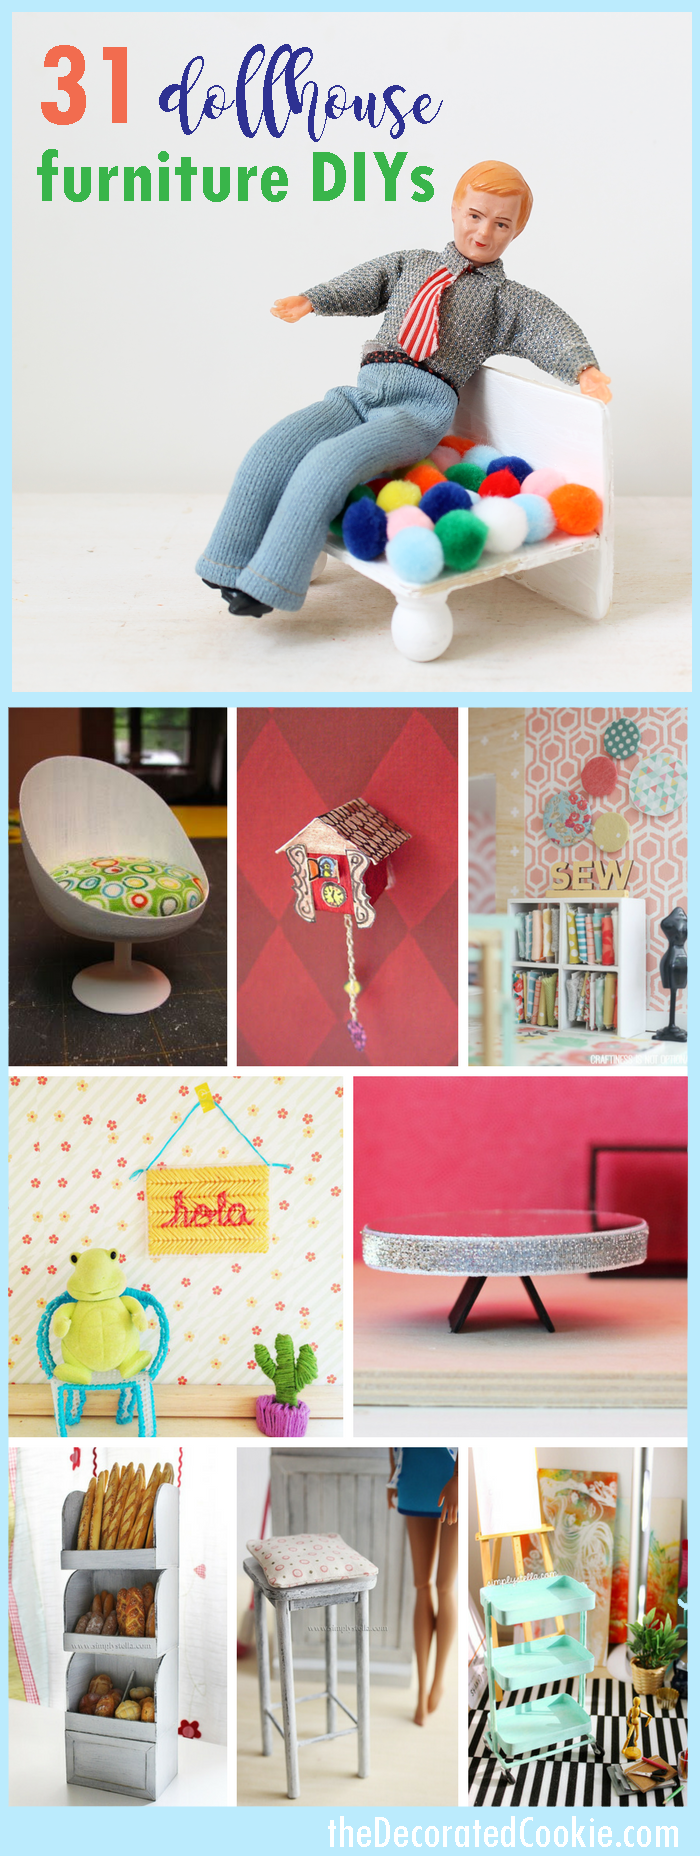 Doll house furniture ideas: A roundup of DIY doll house furniture tutorials.